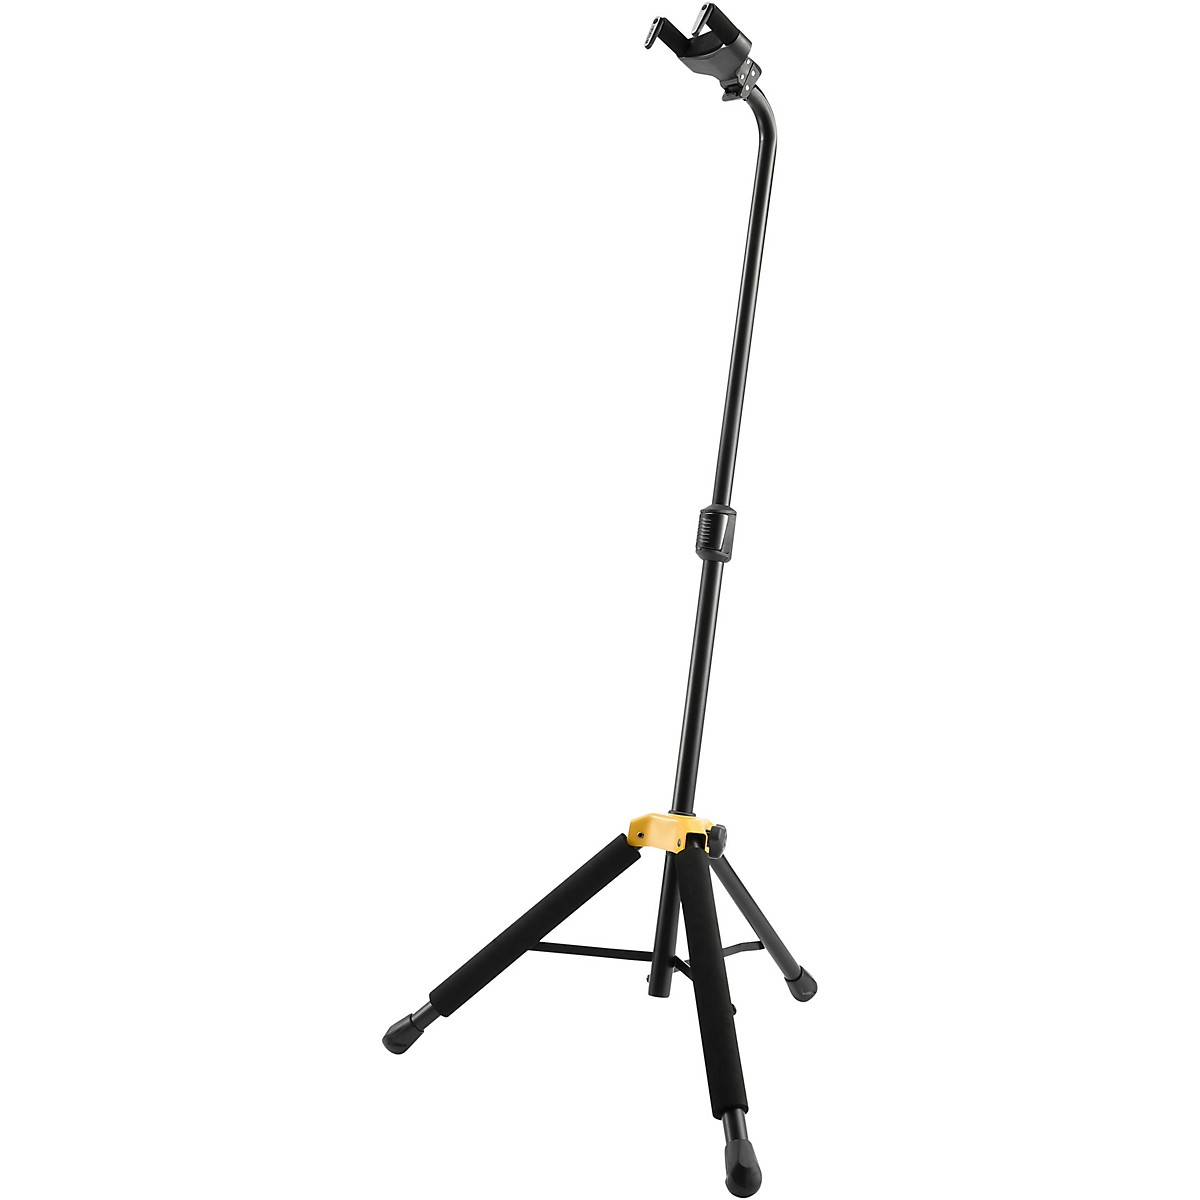 Hercules GS414B PLUS Auto Grip System (AGS) Single Guitar Stand